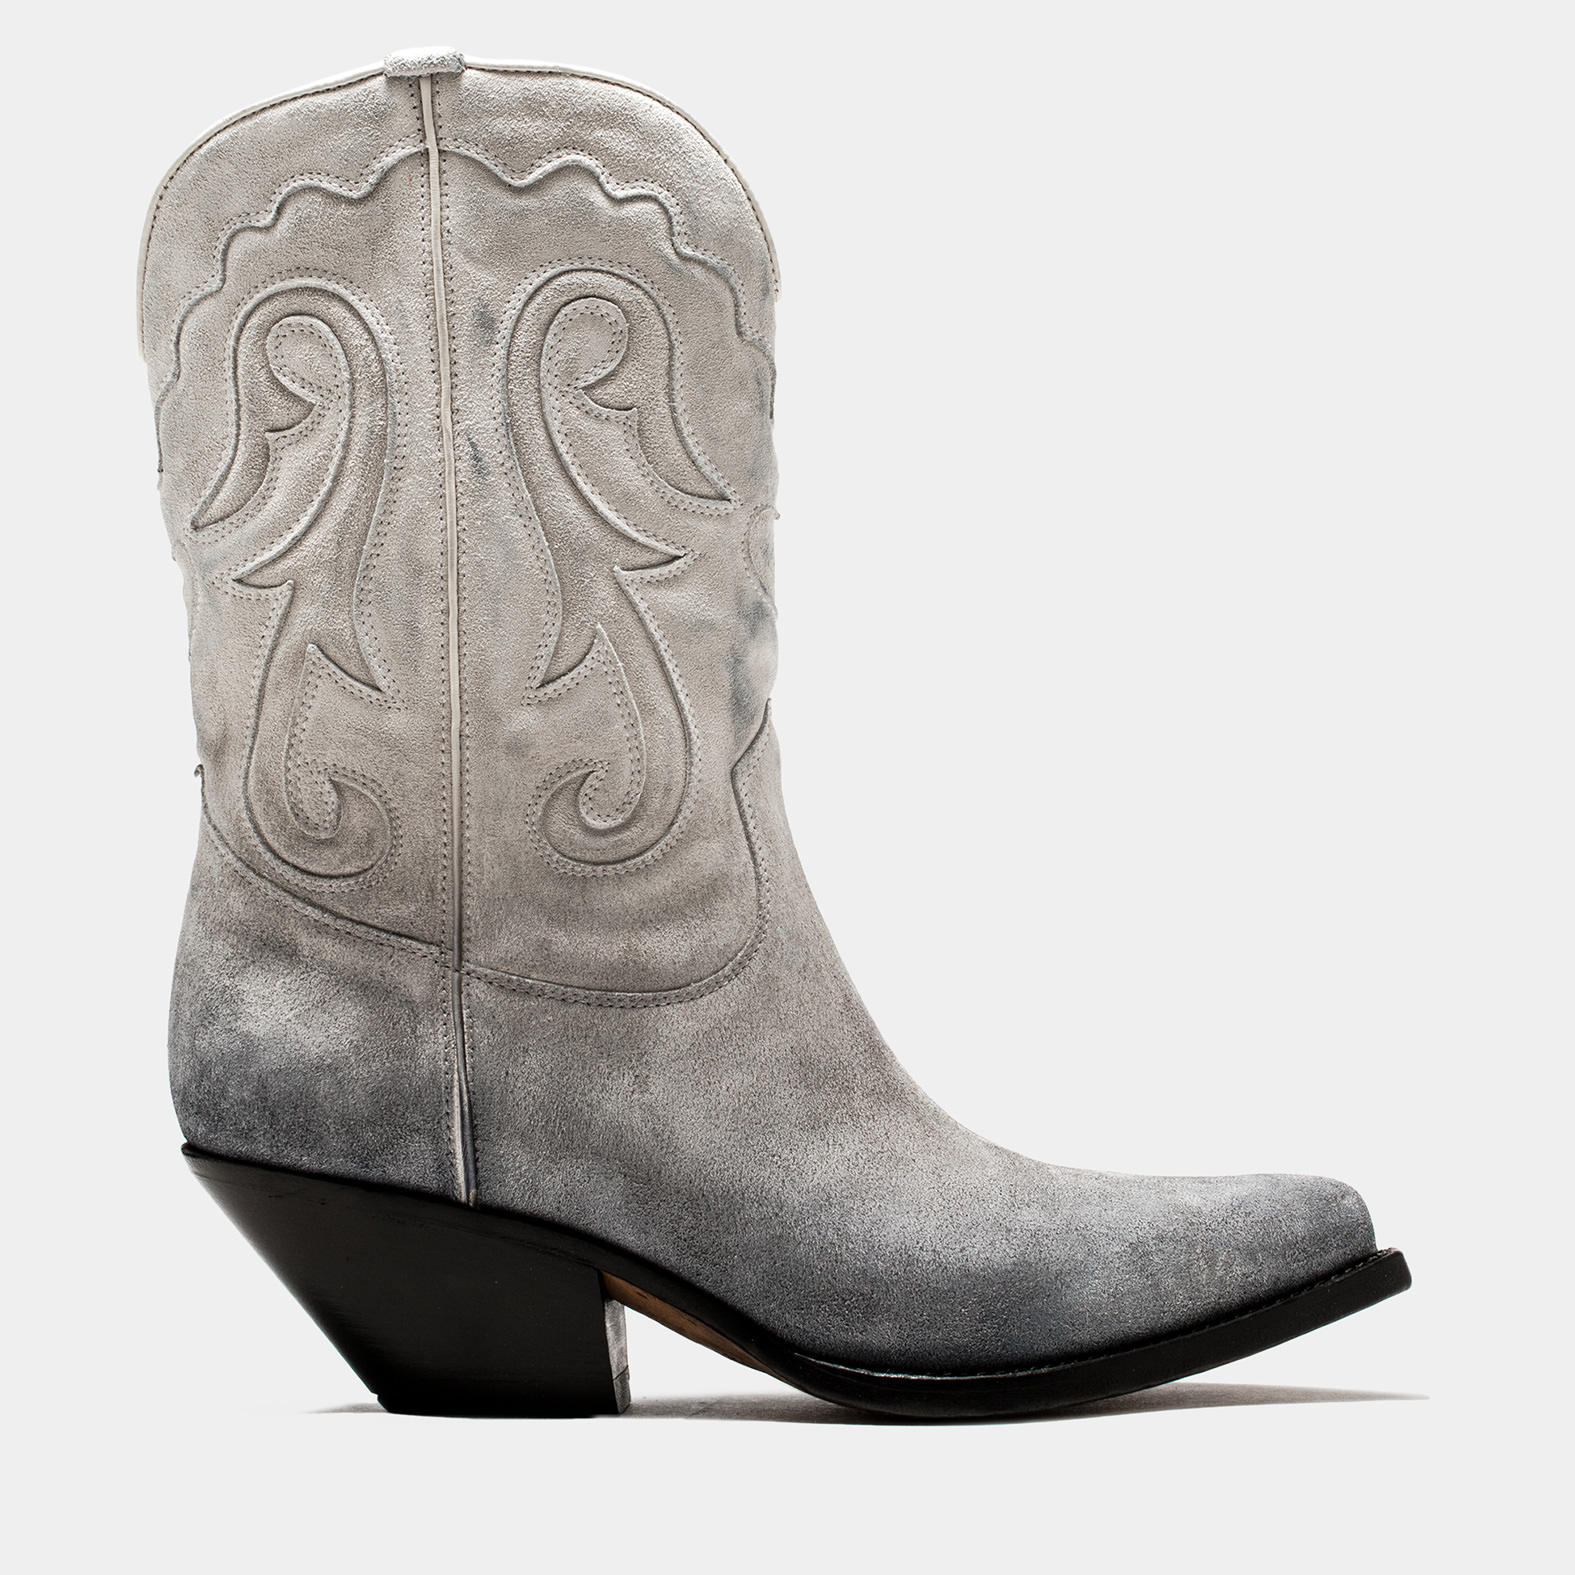 BUTTERO: ELISE MID TOP DURANGO BOOTS IN WHITE/GRAY/BLACK DEGRADE' SUEDE